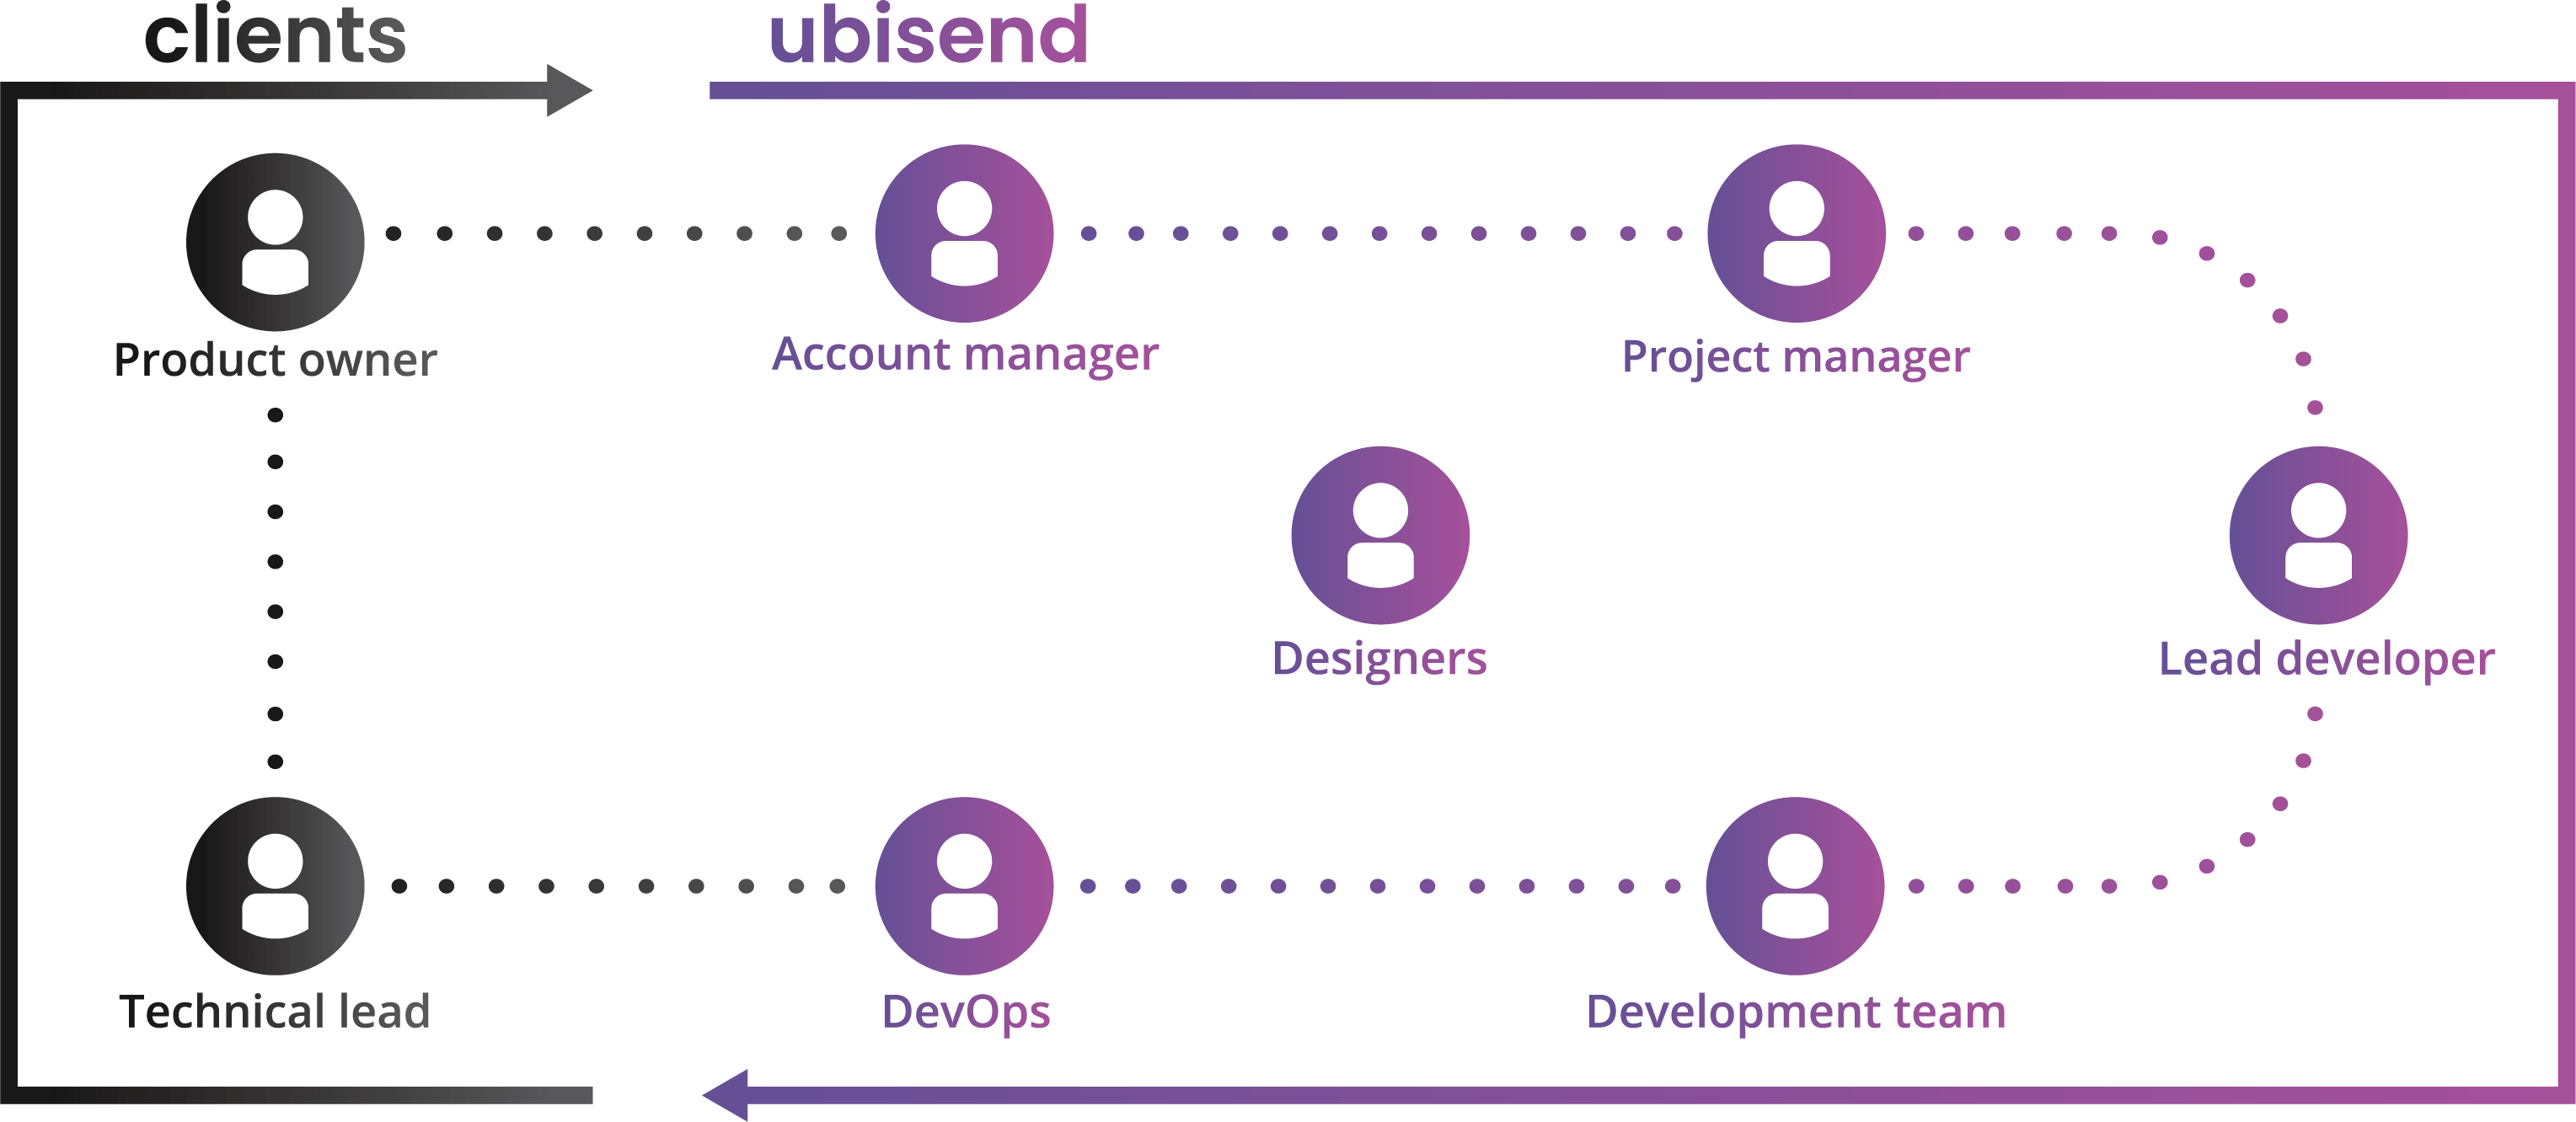 ubisend chatbot development team structure